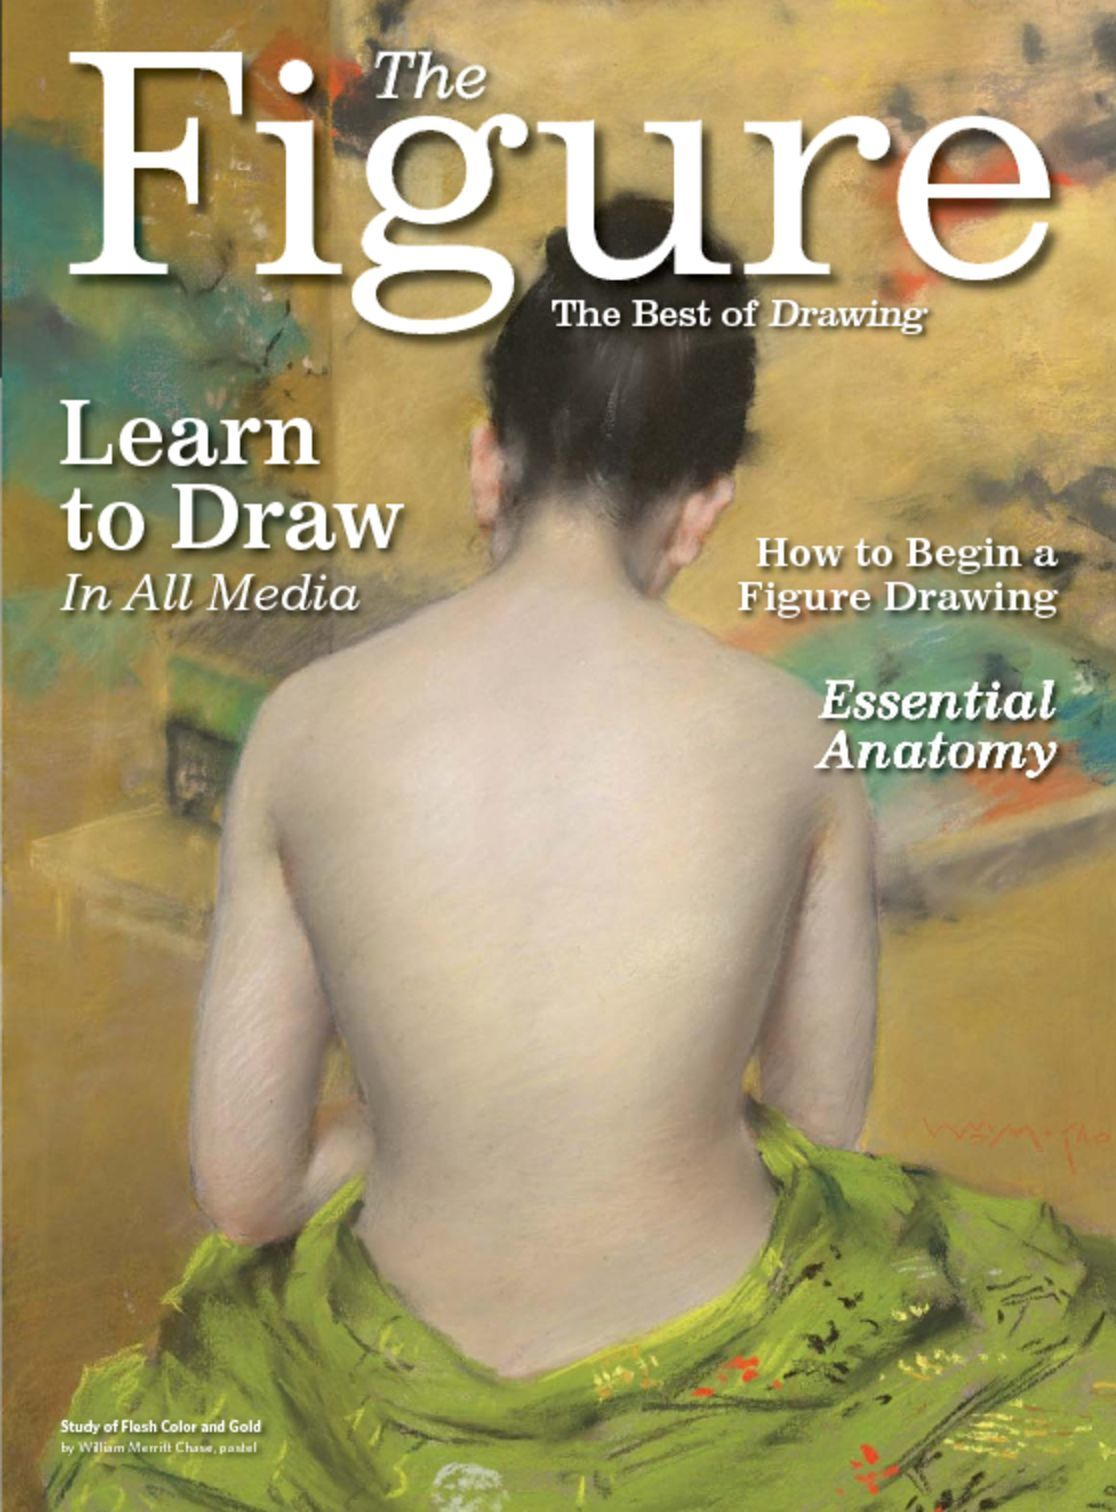 The Figure The Best of Drawing Digital